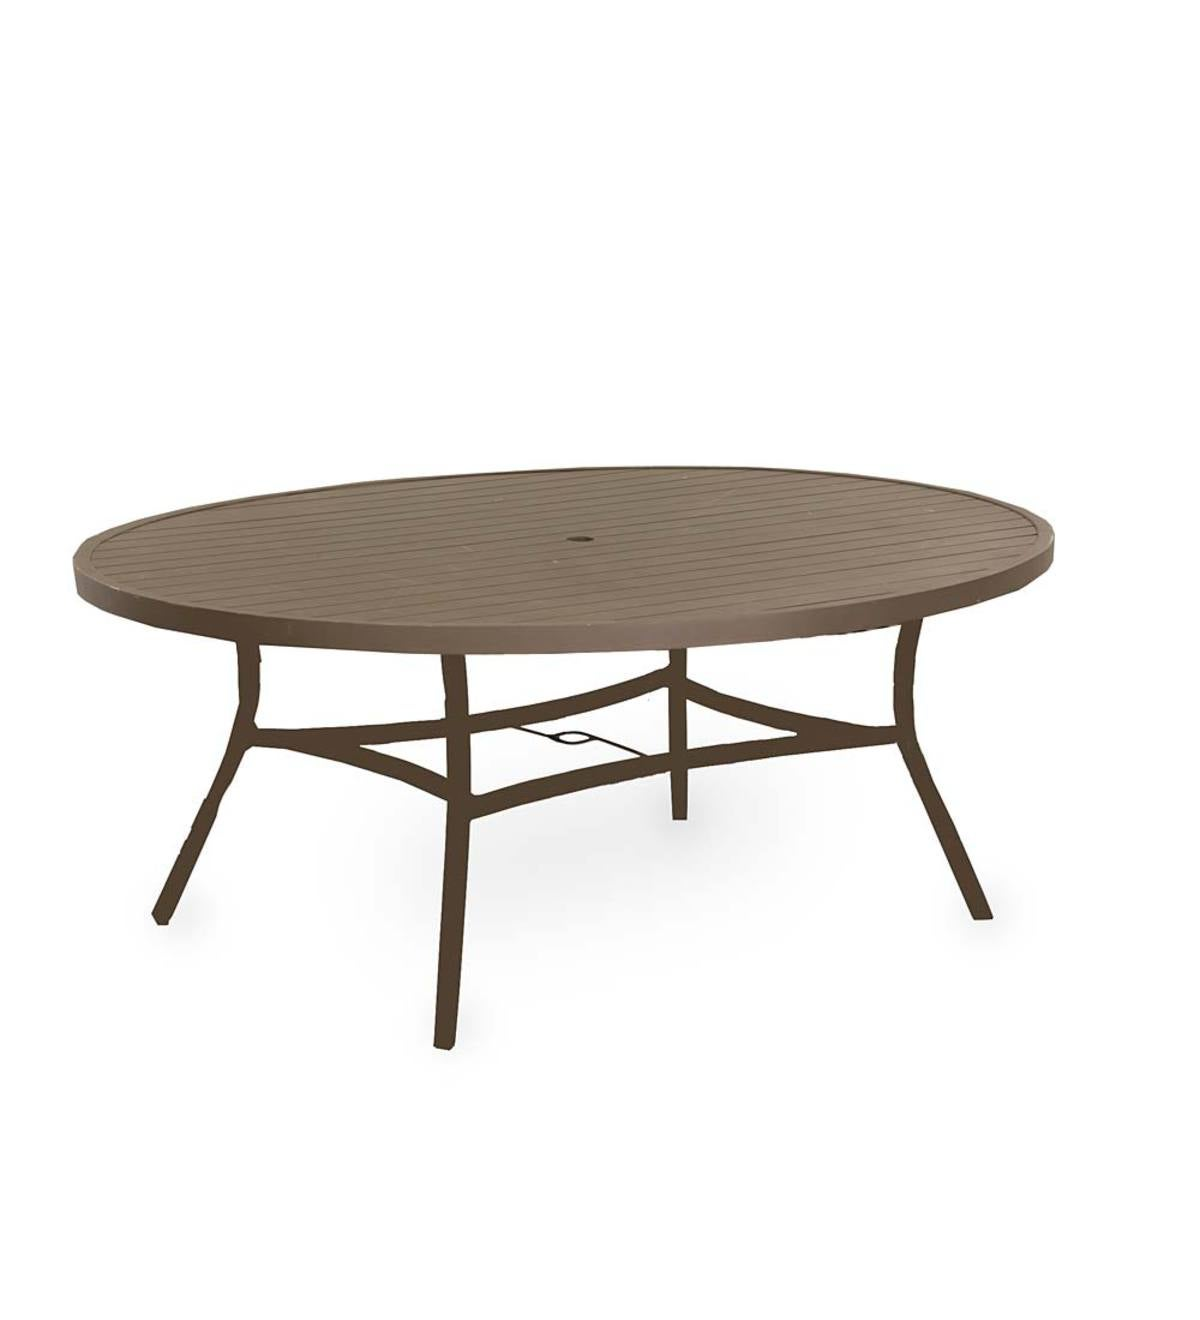 Topsail Oval Dining Table